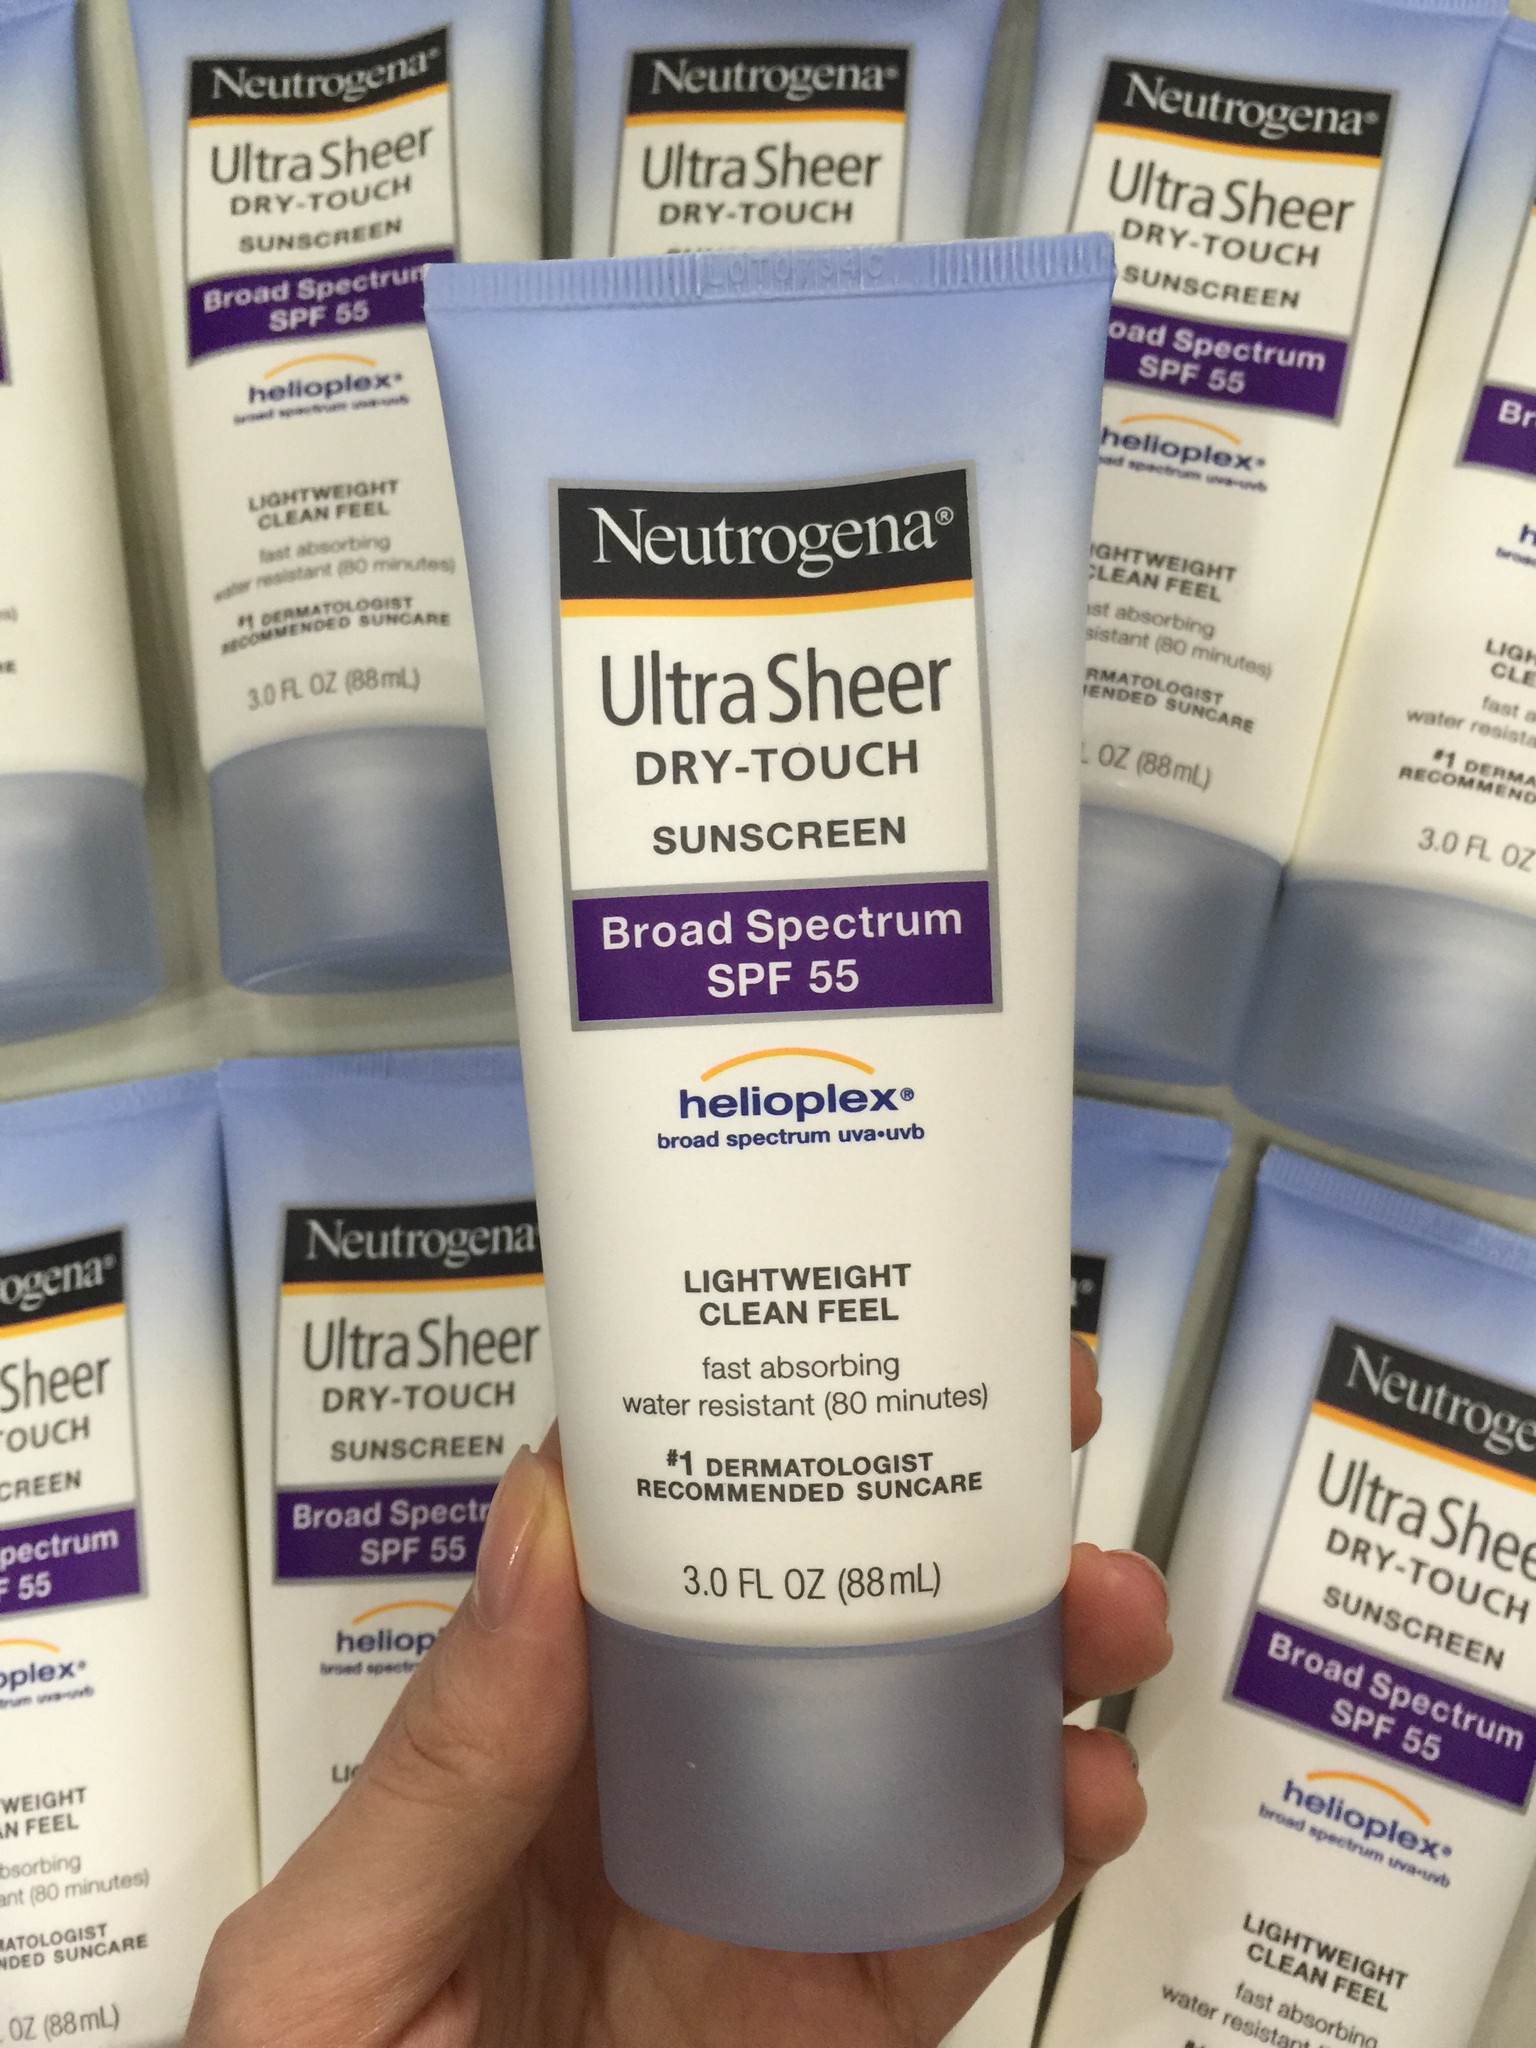 [Neutrogena] Kem chống nắng Ultra sheer dry touch suncreen SPF 55  88ml